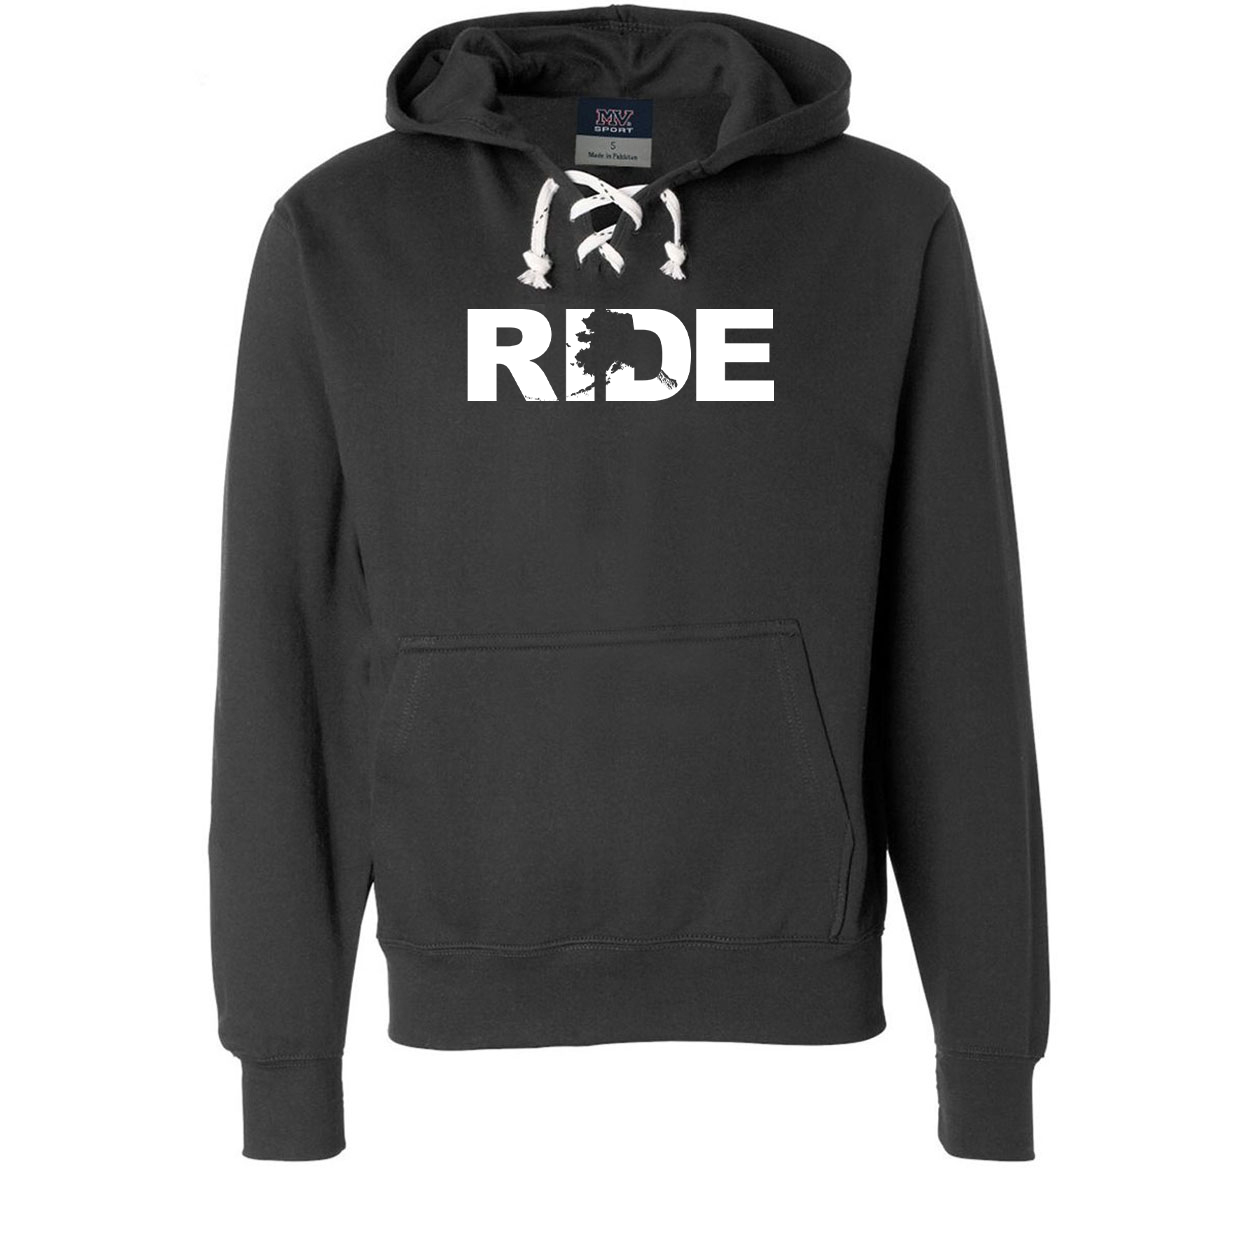 Ride Alaska Classic Unisex Premium Hockey Sweatshirt Black (White Logo)